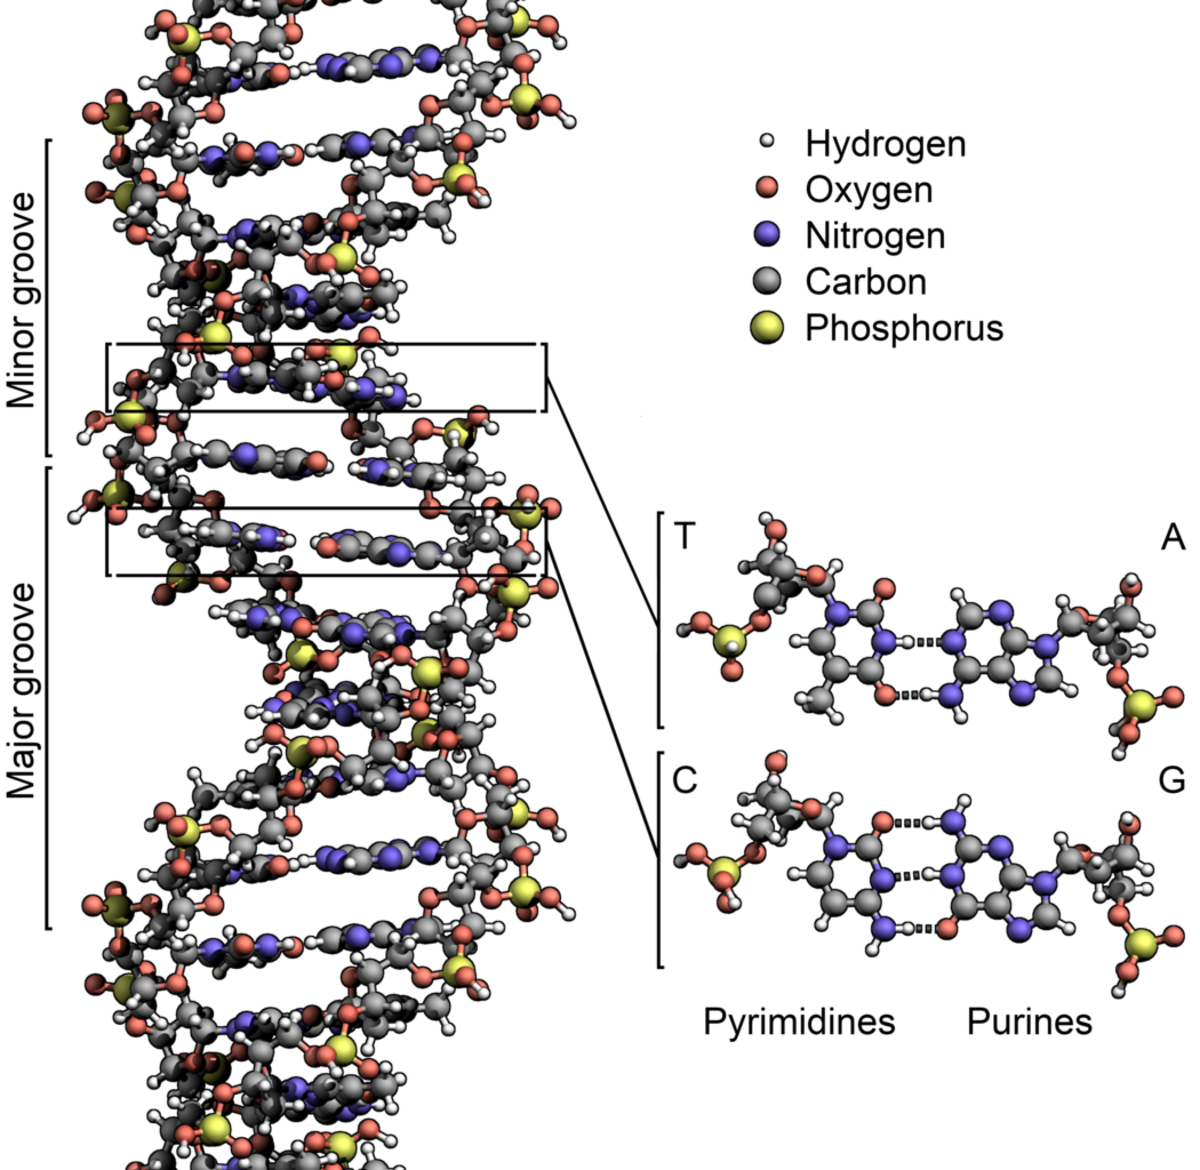 Structure of a DNA molecule